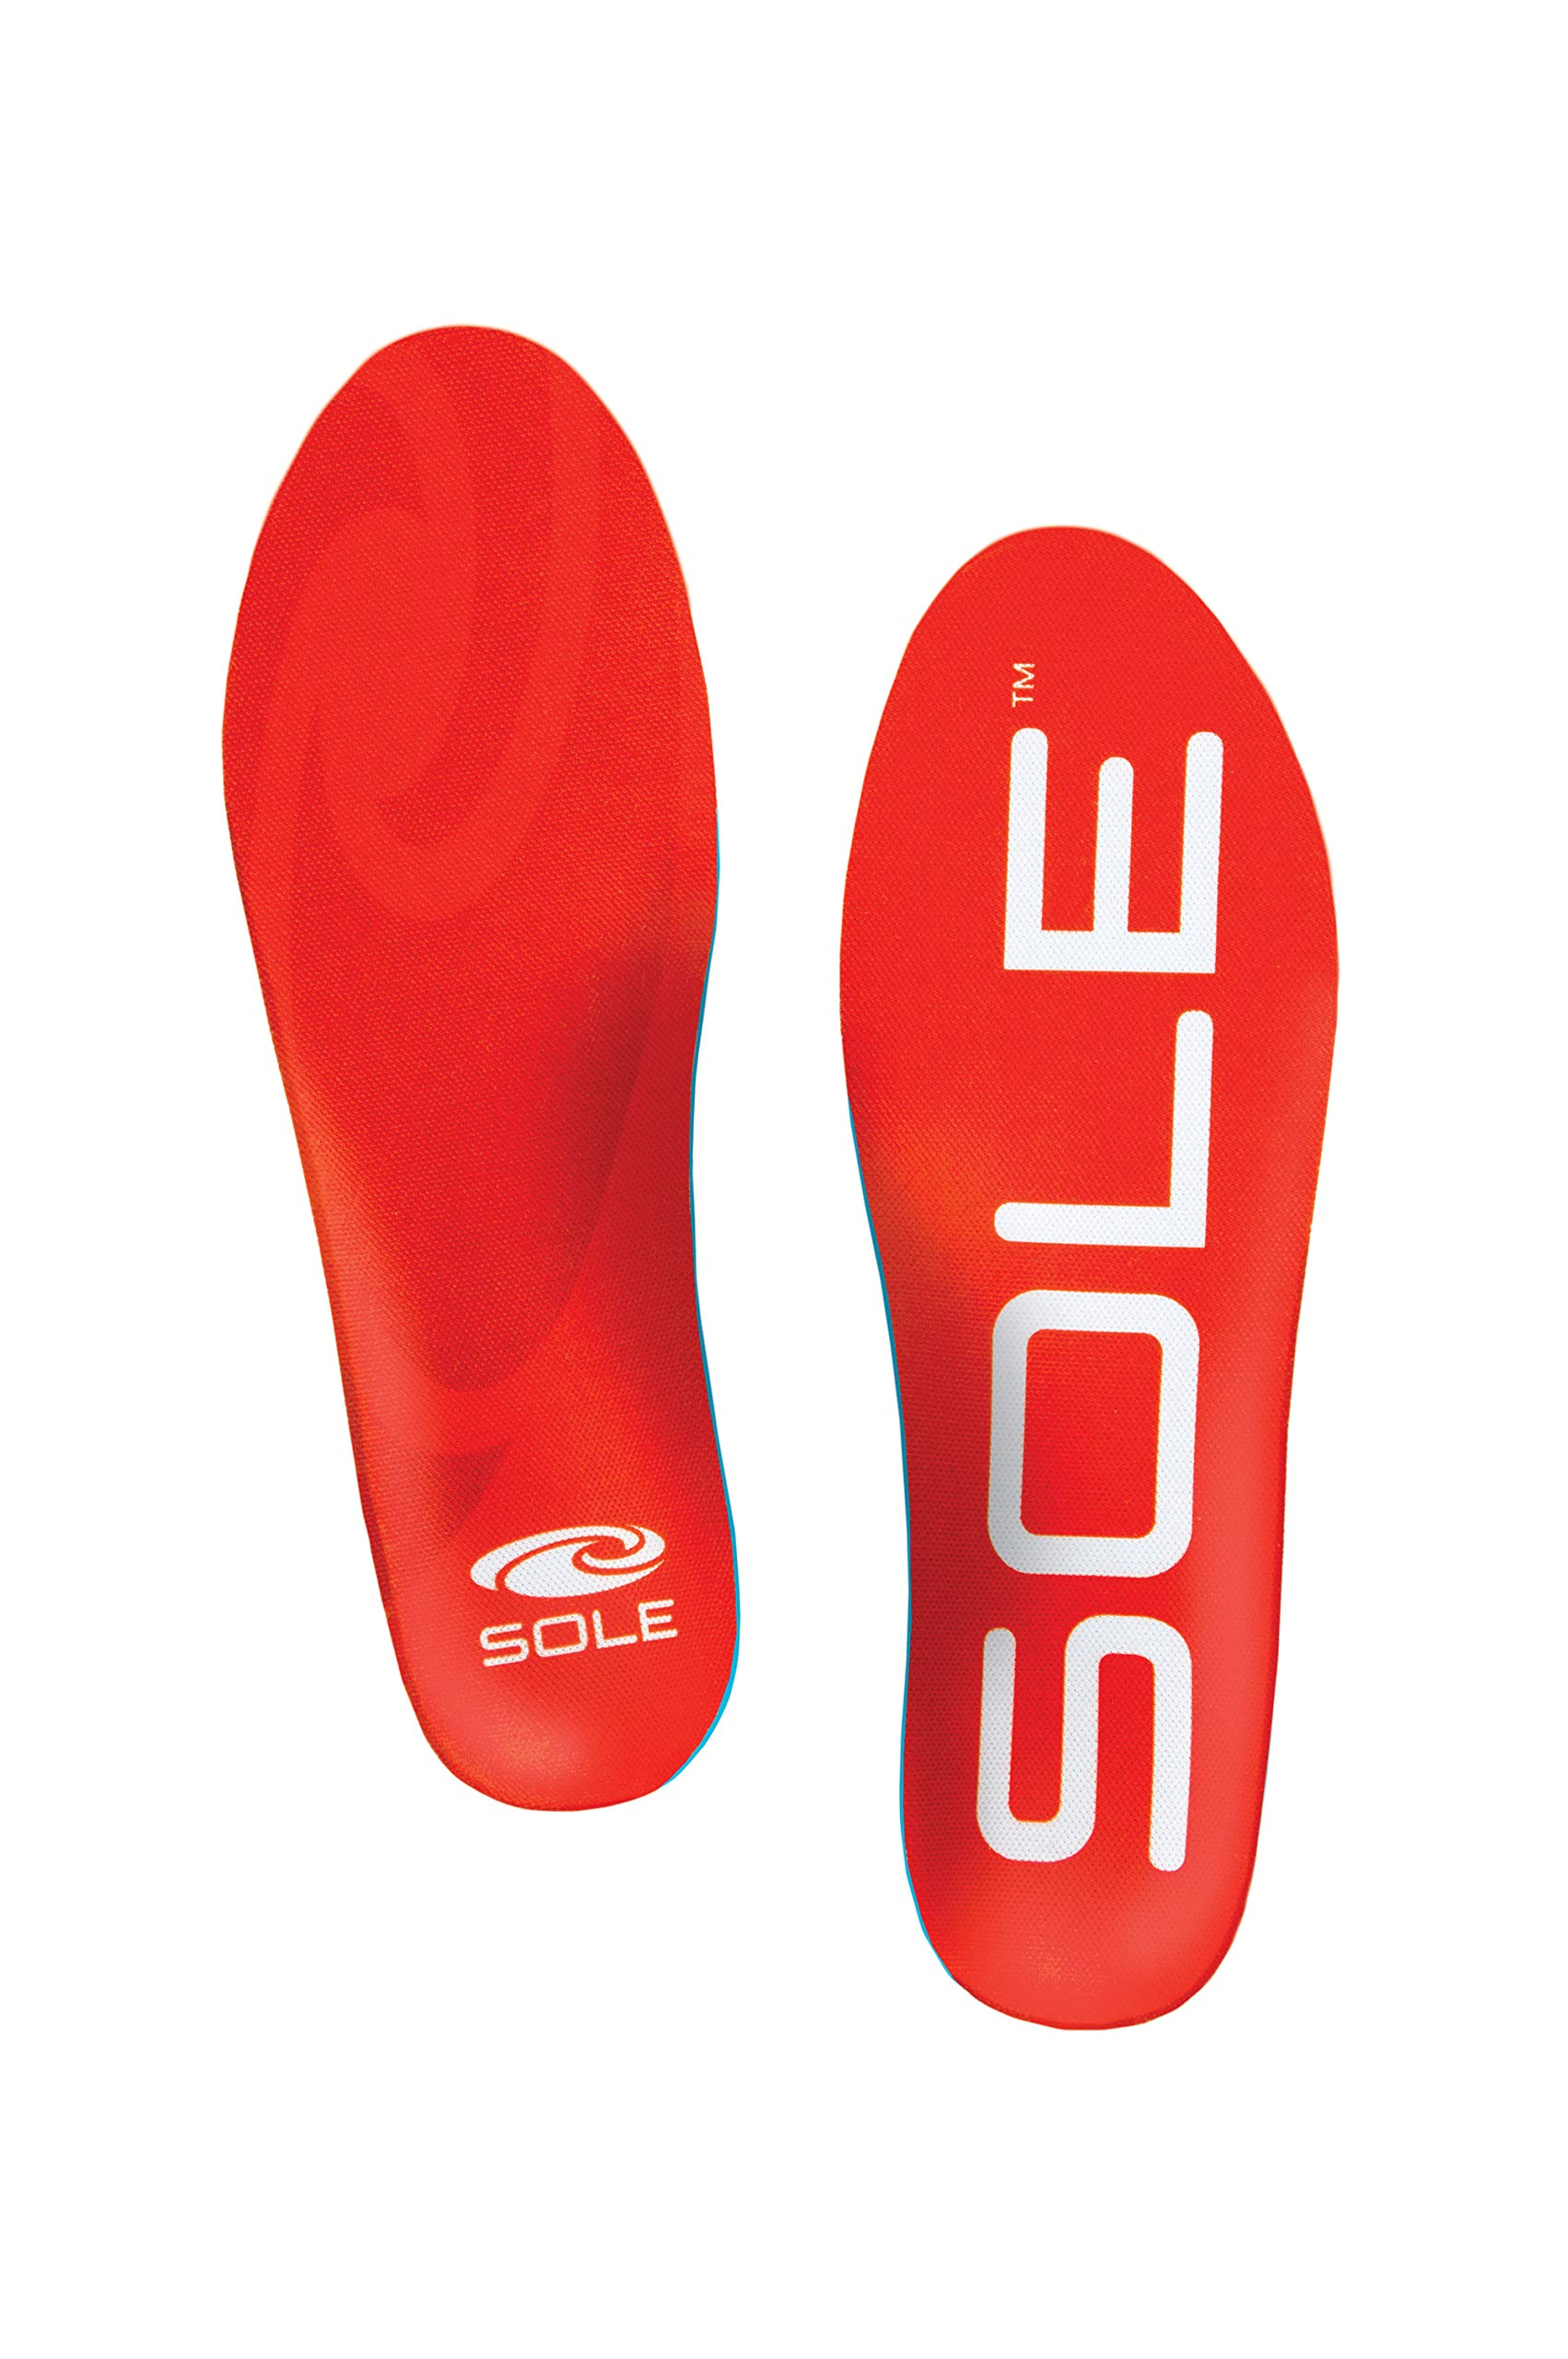 Sole Active Medium EVA Footbed - Men's Size 7/Women's Size 9 by SOLE